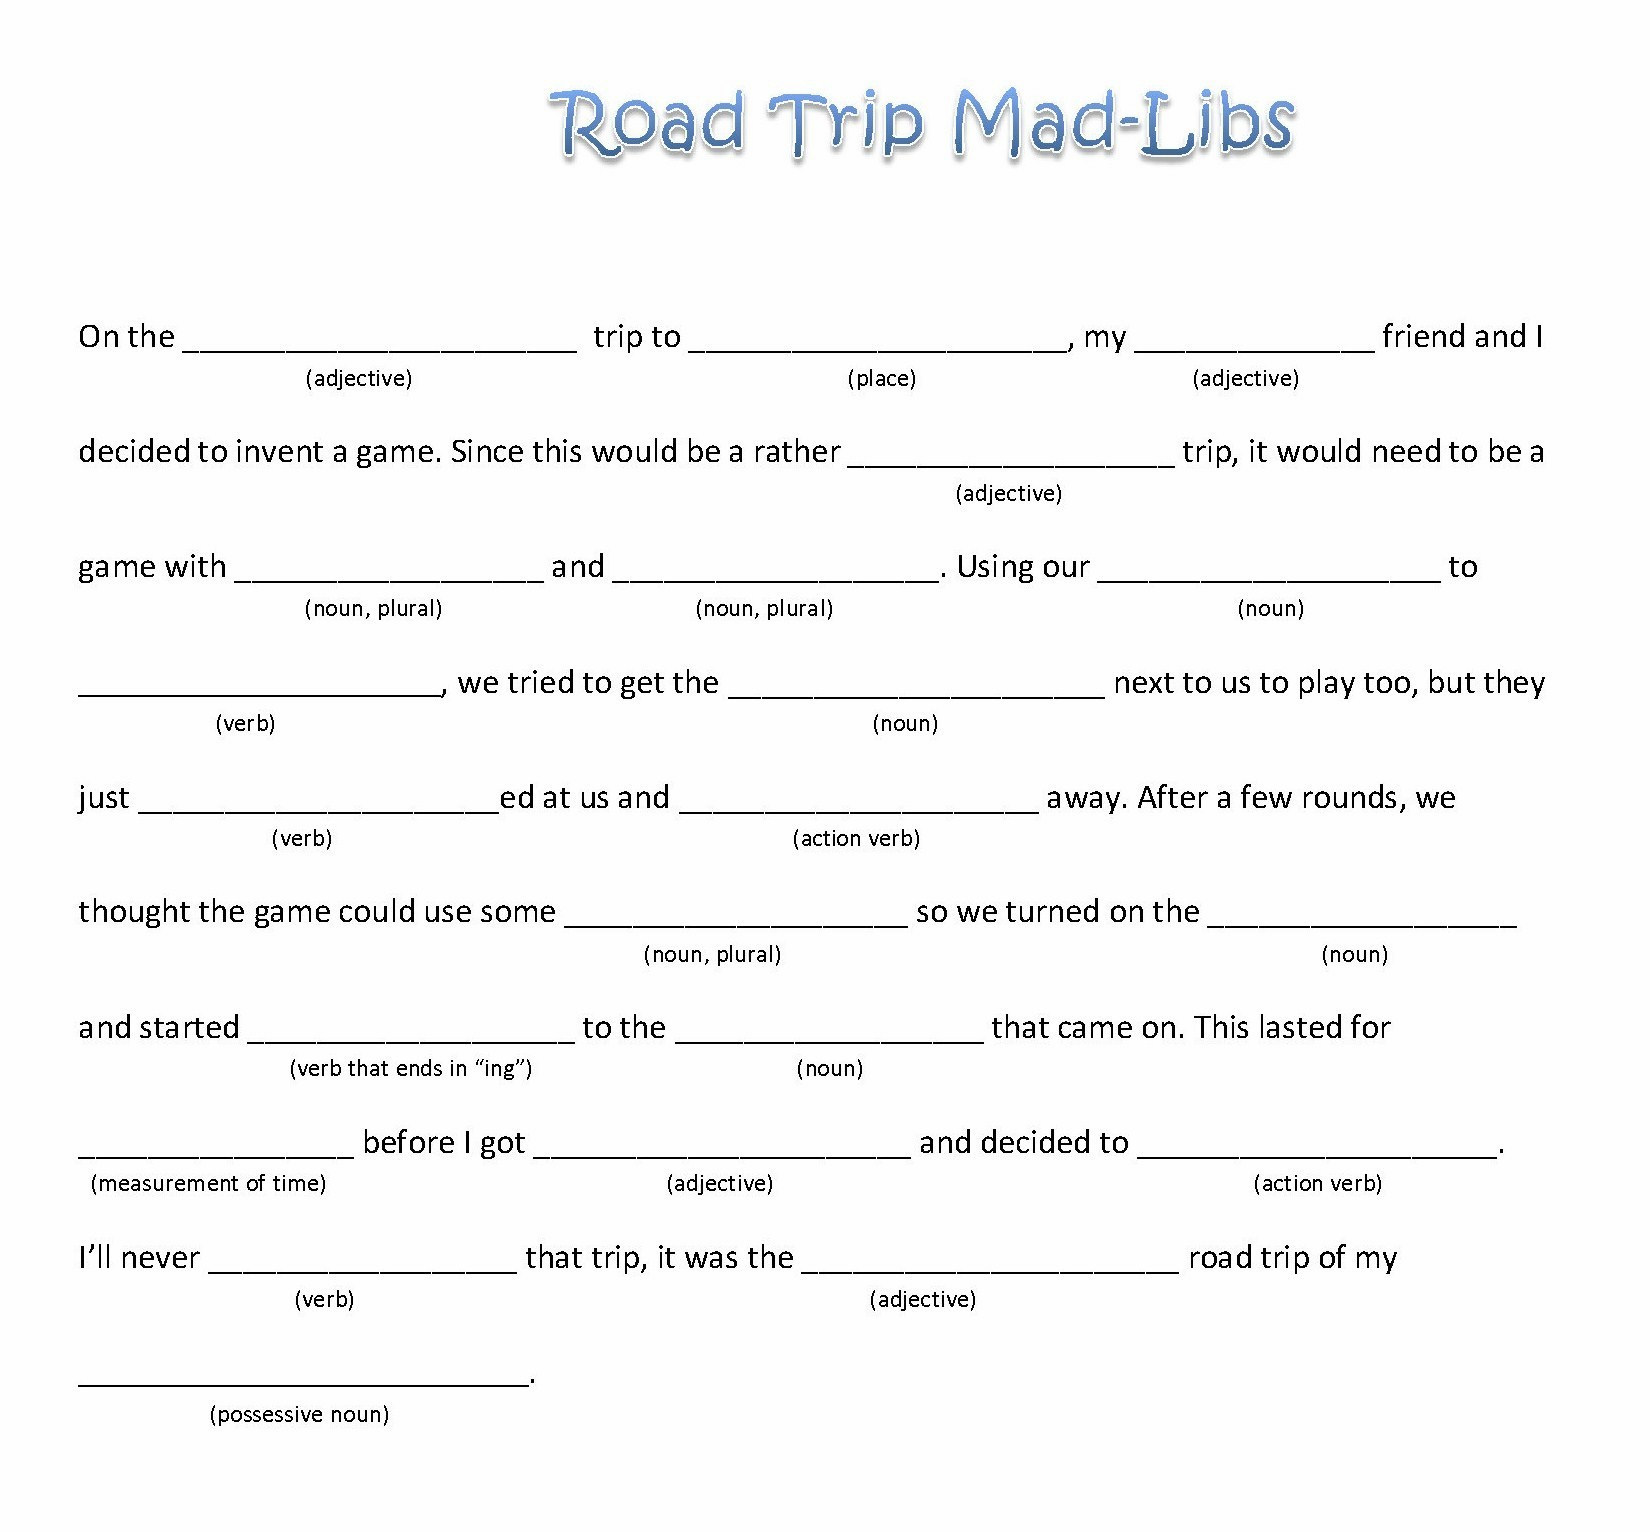 Epic Road Trip Mad Libs